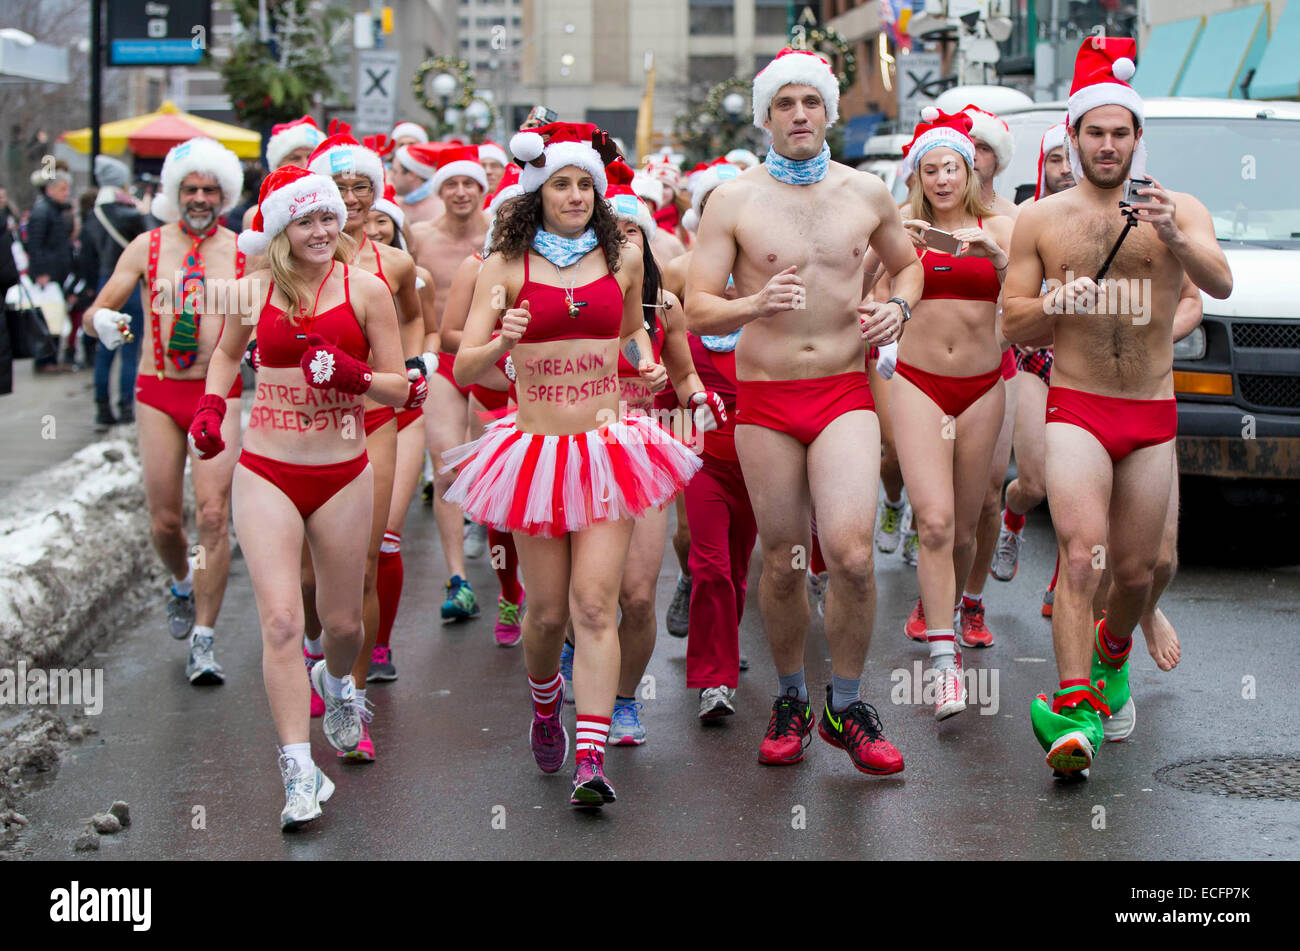 d83277e469cb2 Toronto, Canada. 13th Dec, 2014. Participants in red bathing suits run  during